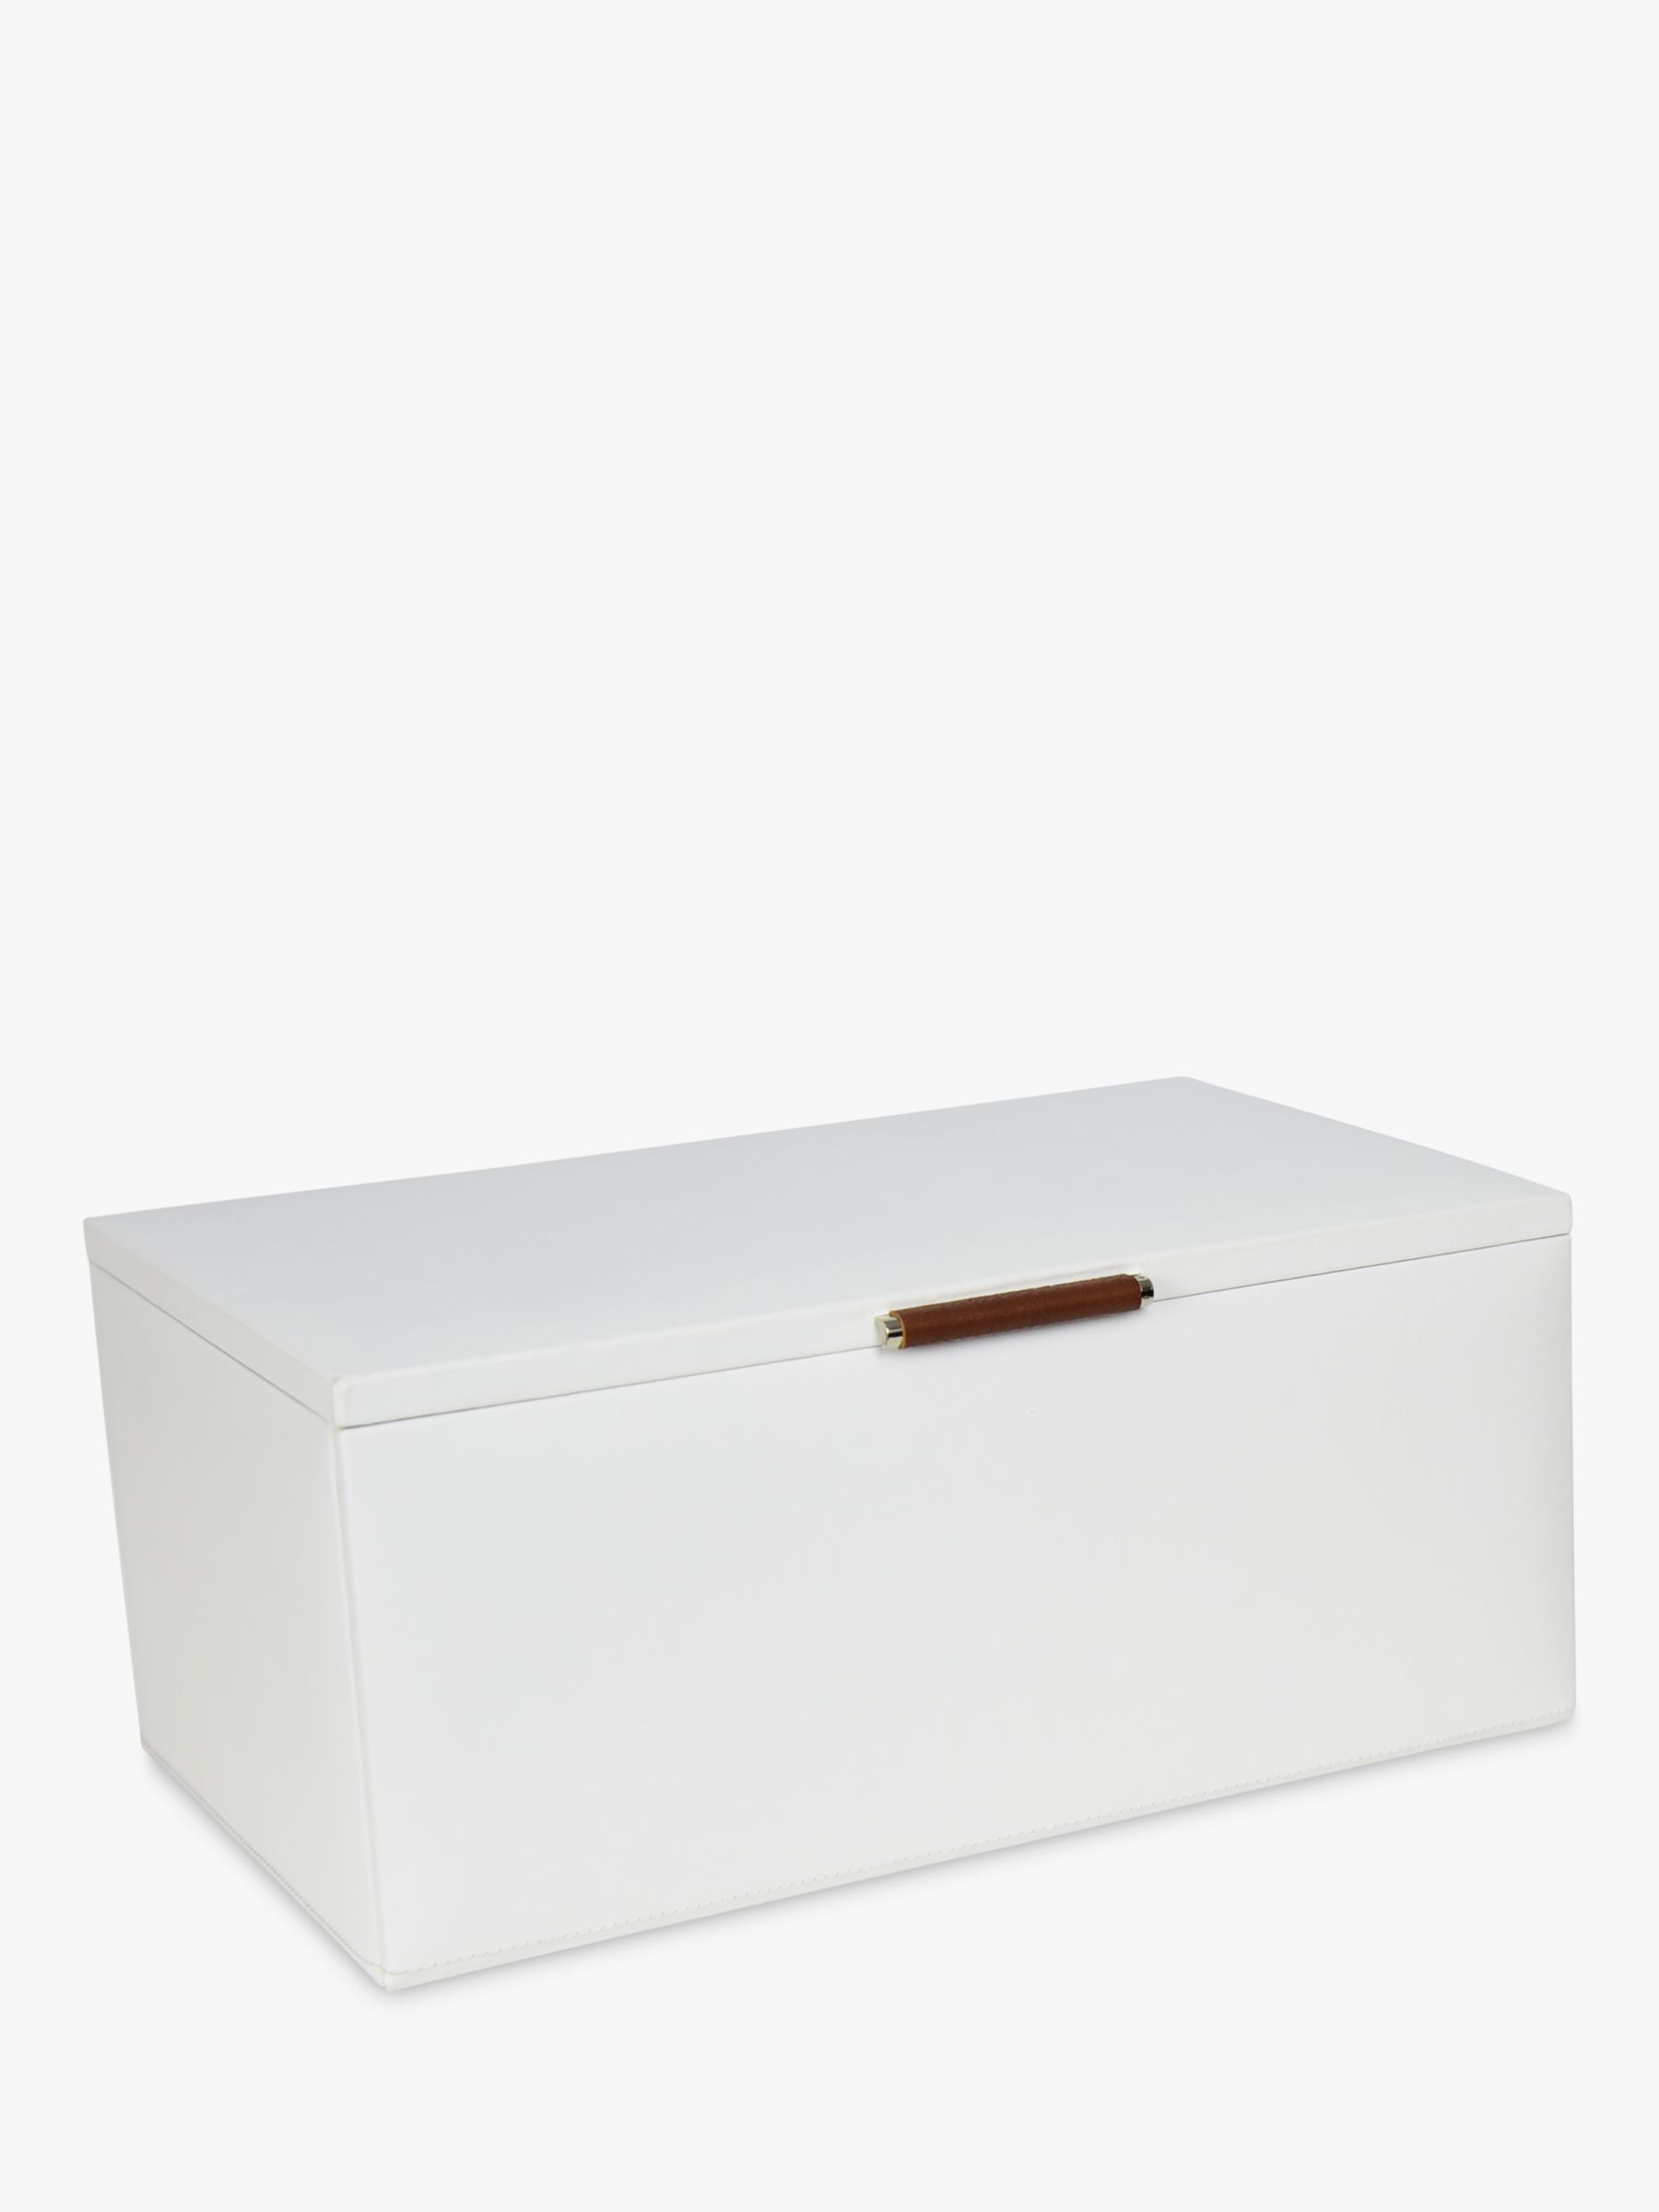 Dulwich Designs Dulwich Designs Malmo Large Jewellery Box, White